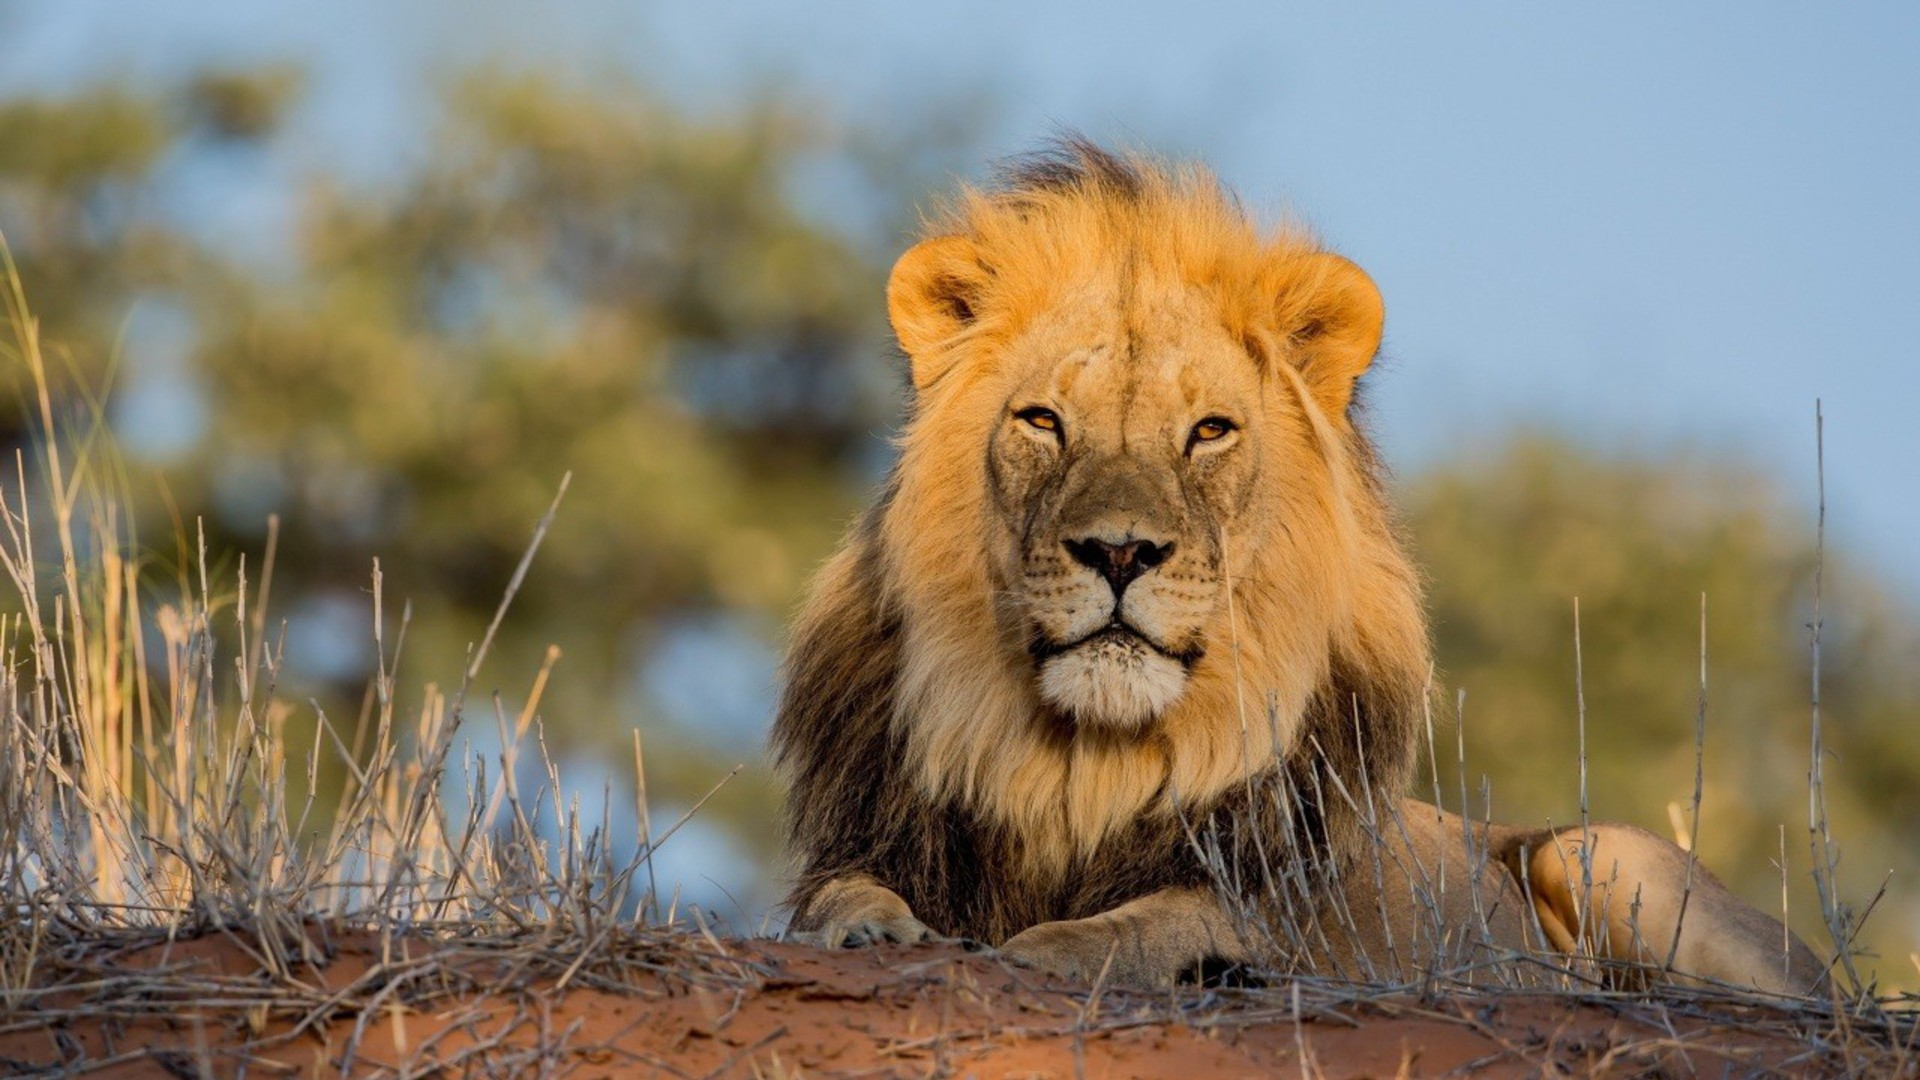 Animals lions wallpaper 3739 pc en - All animals hd wallpapers ...